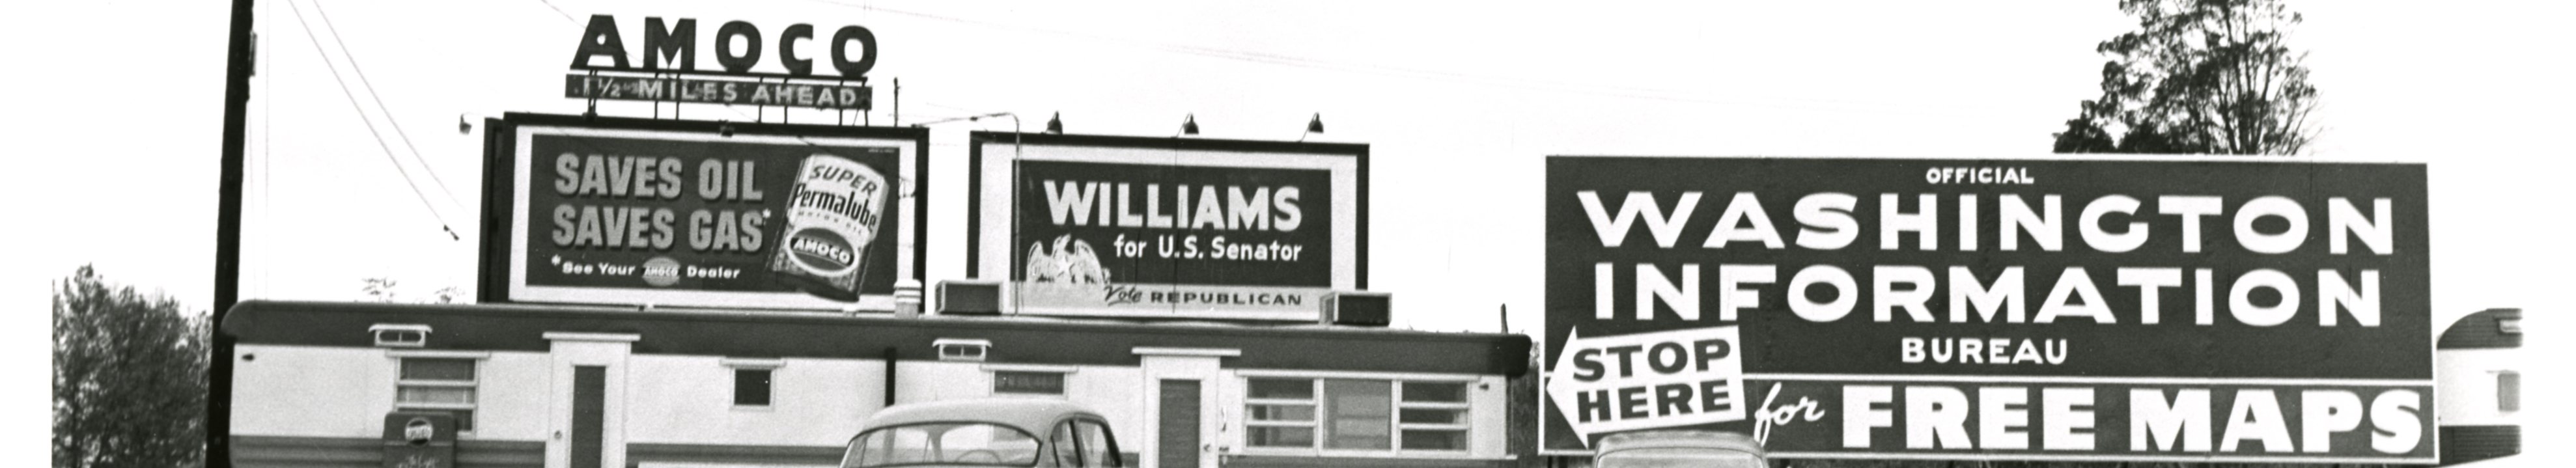 Senator John J Williams campaign